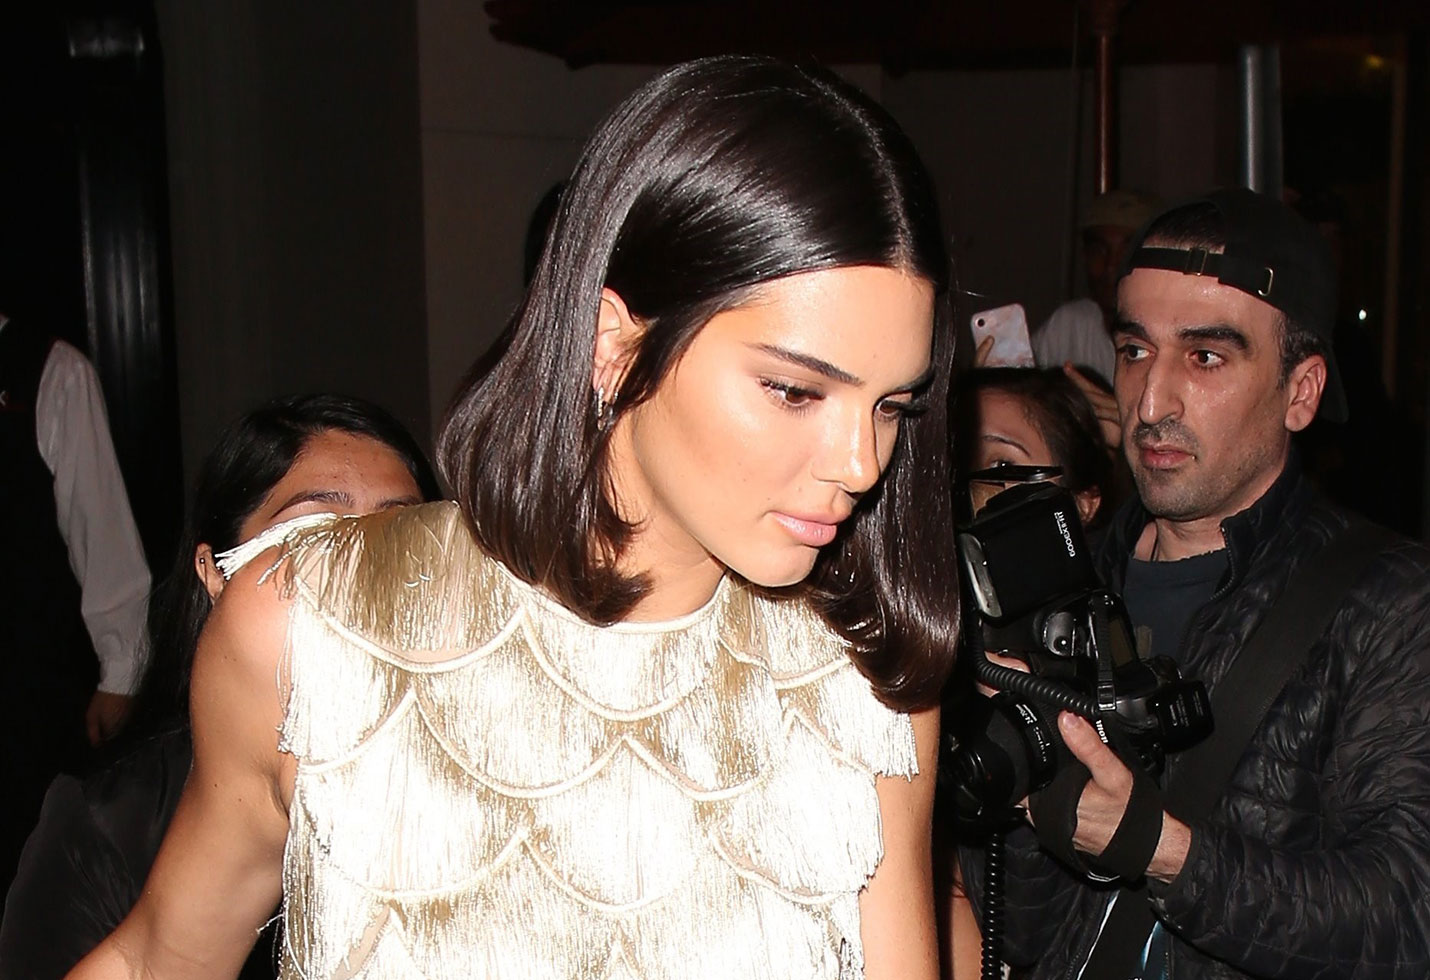 Kendall jenner bares breasts naked racy photoshoot